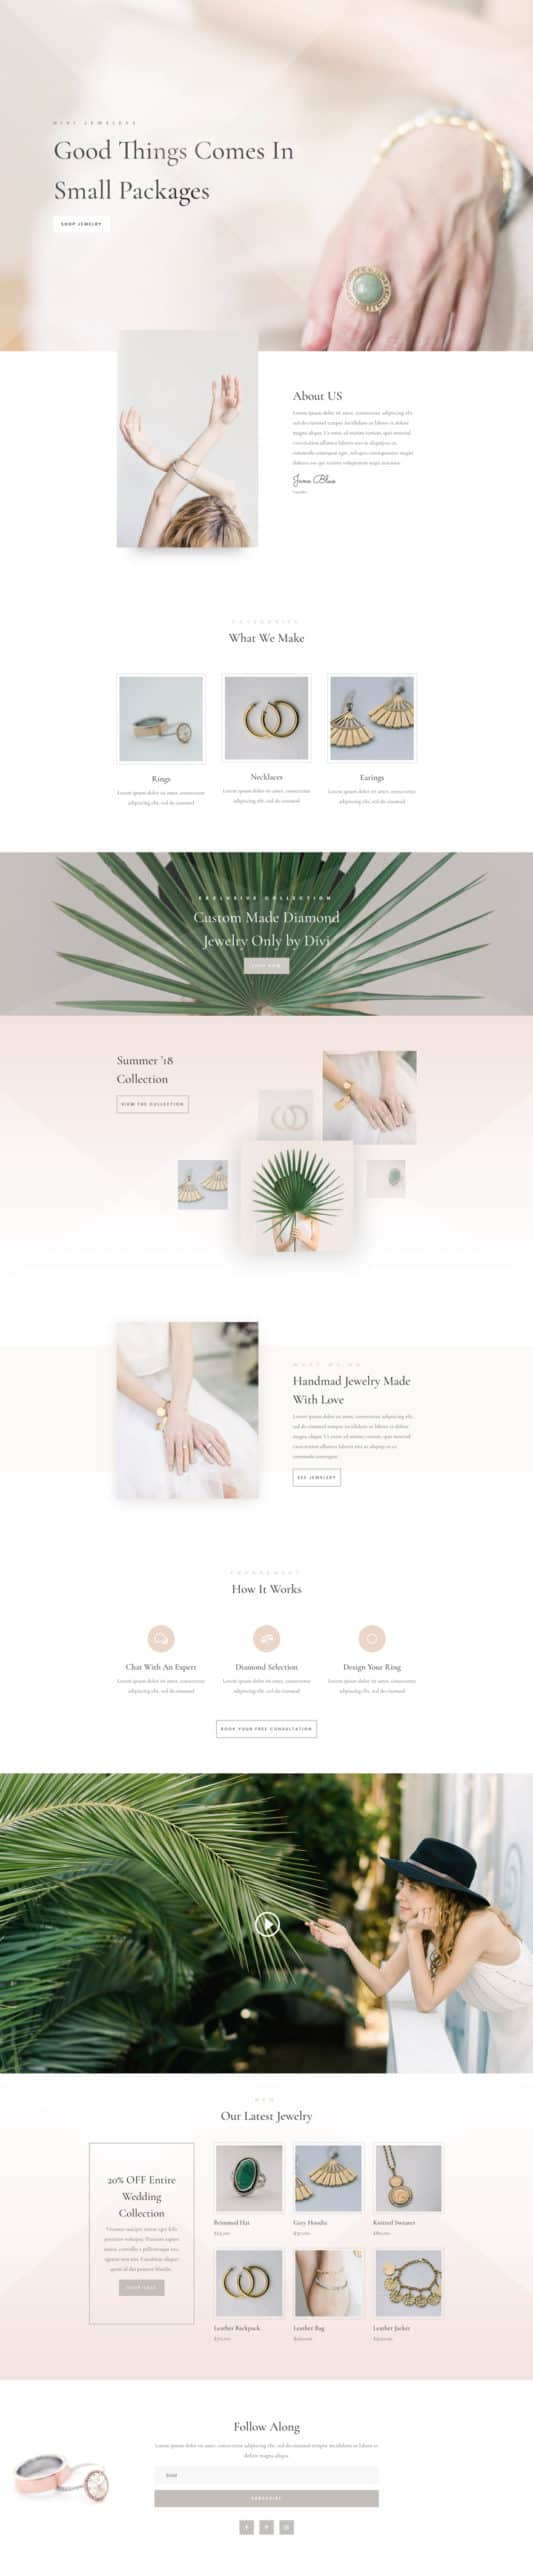 The Jeweler Page Style: Homepage Design 1